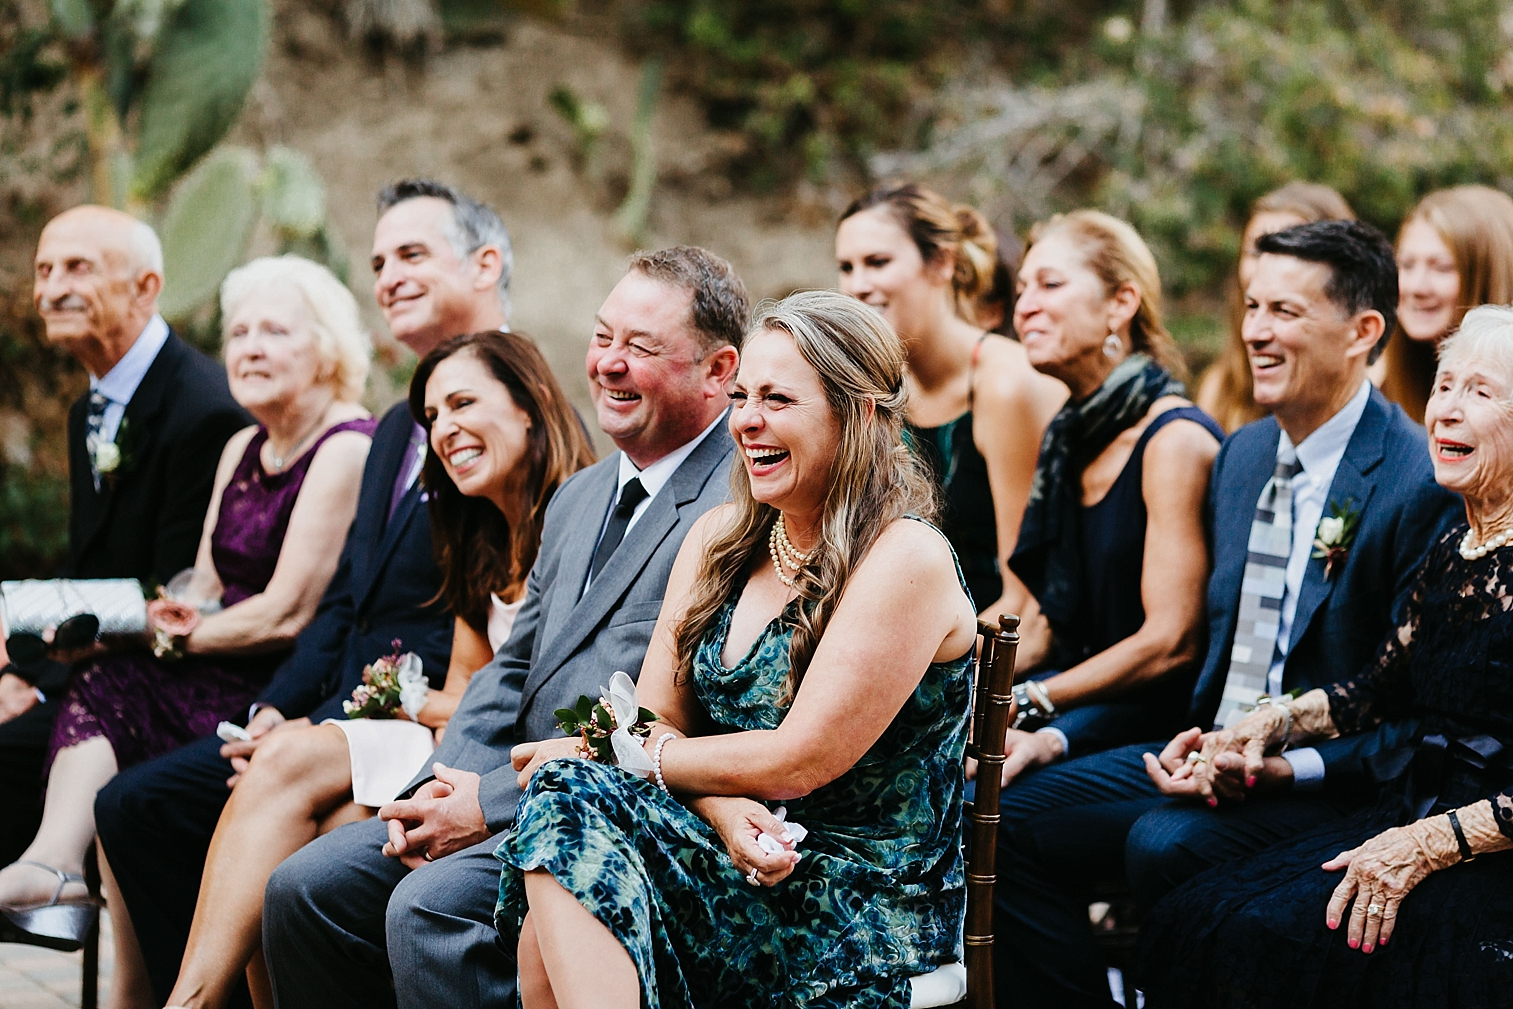 Rancho-Las-Lomas-Wedding-75.jpg